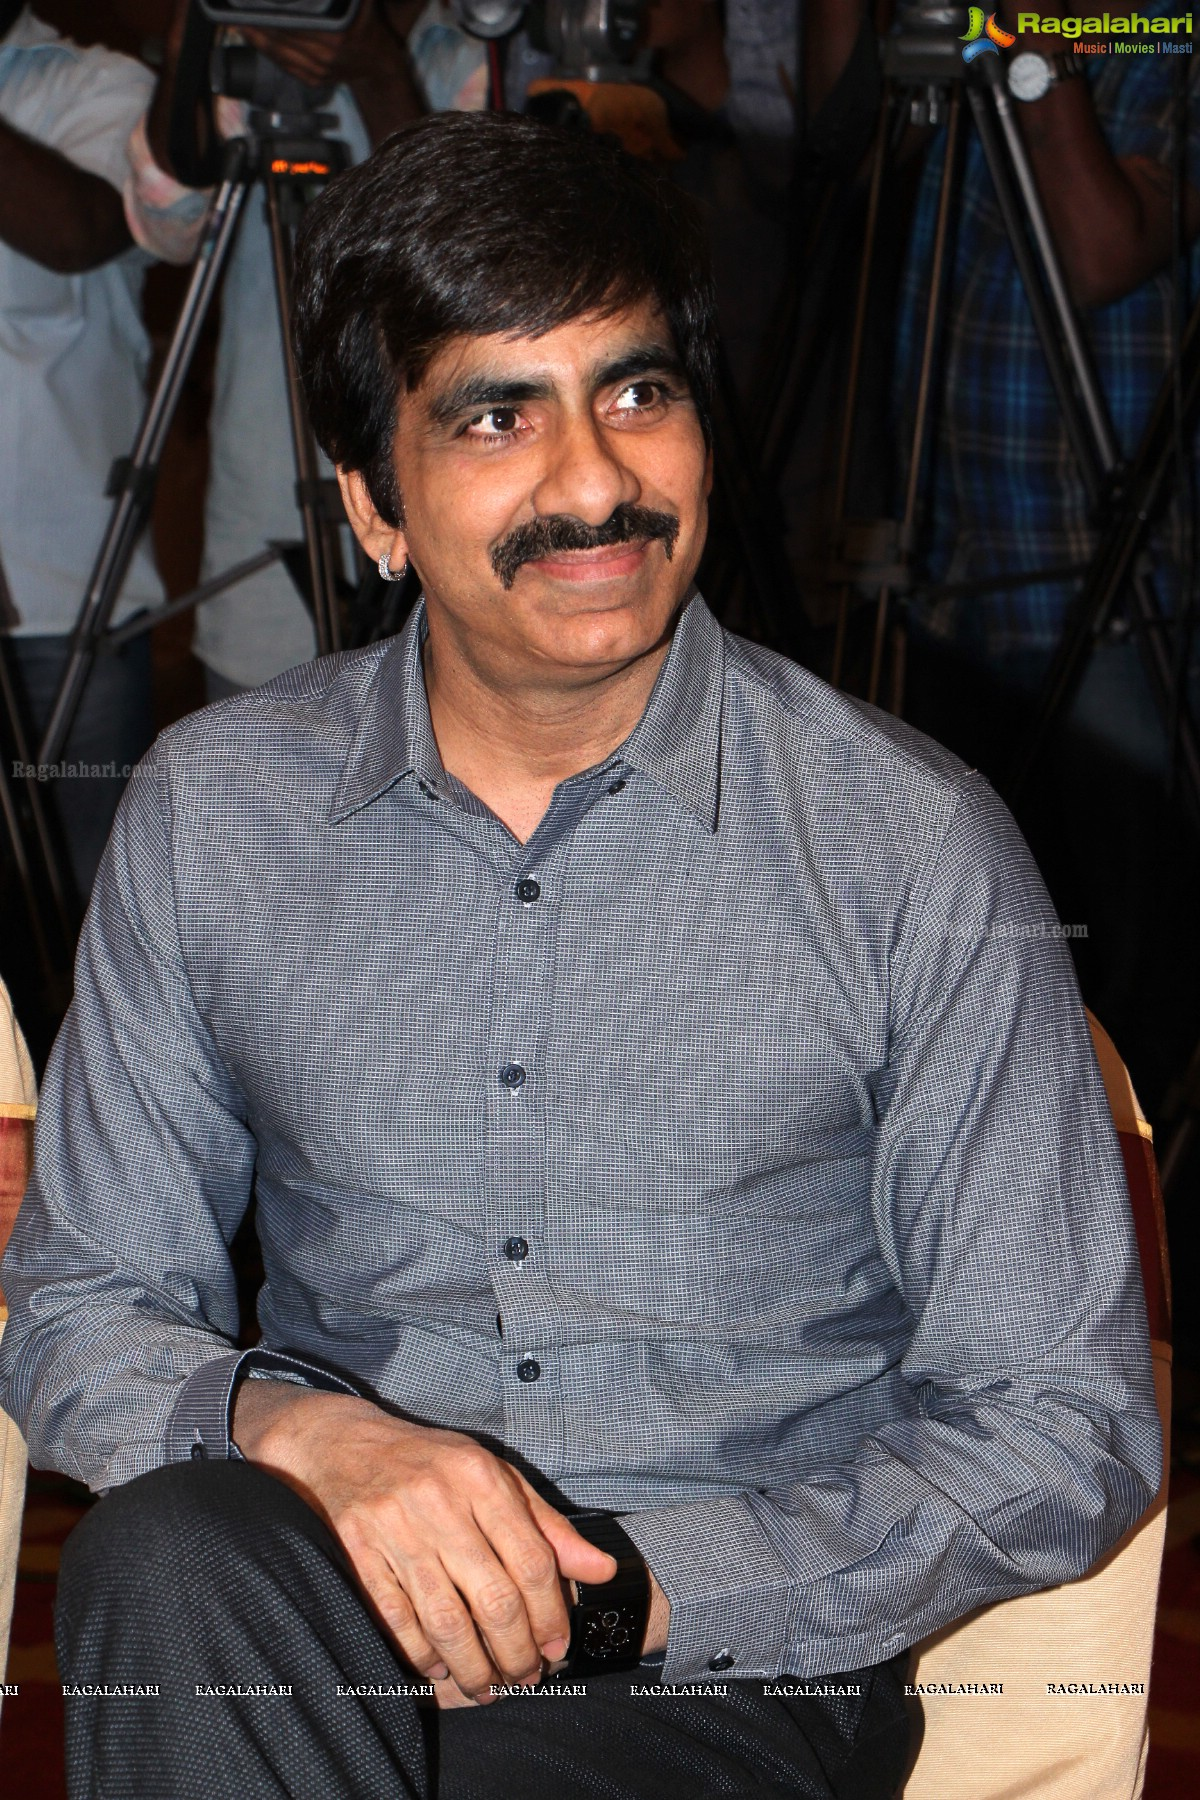 ravi teja image 4 | latest bollywood actor wallpapers,telugu movie